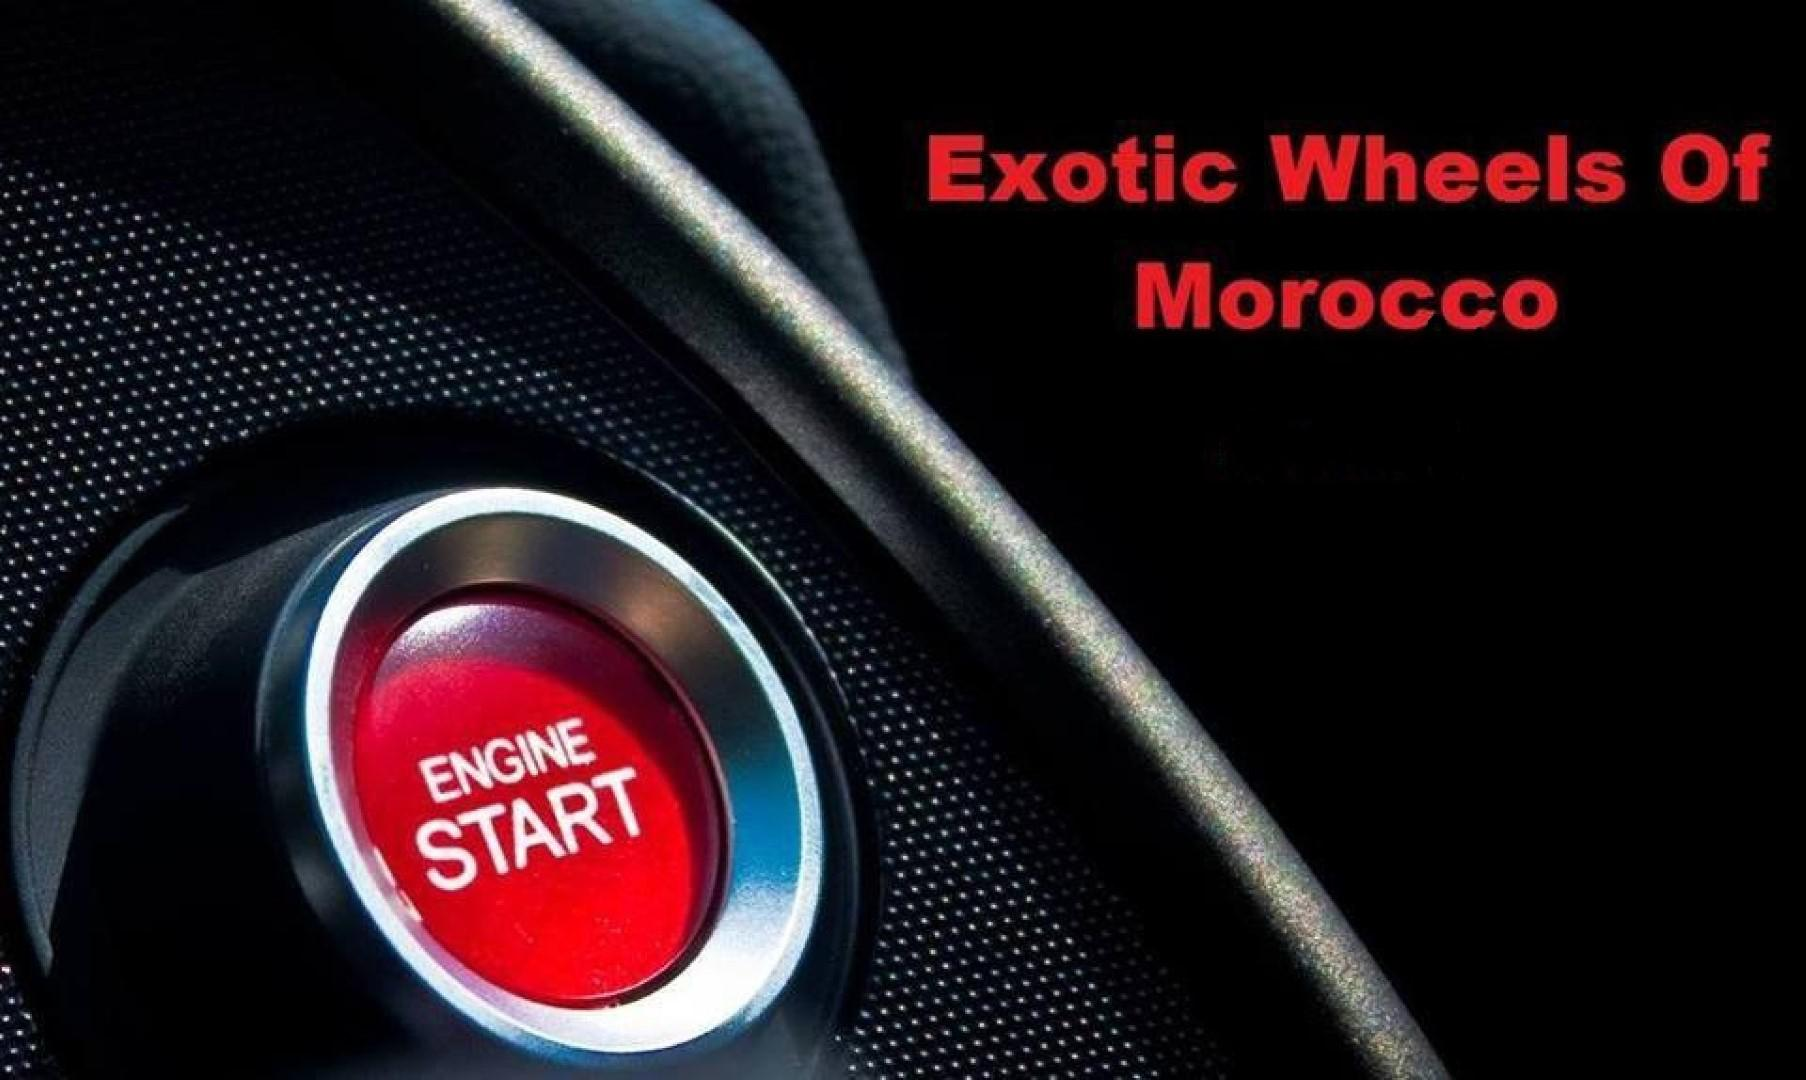 Qui connait les Exotic Wheels of Morocco ?